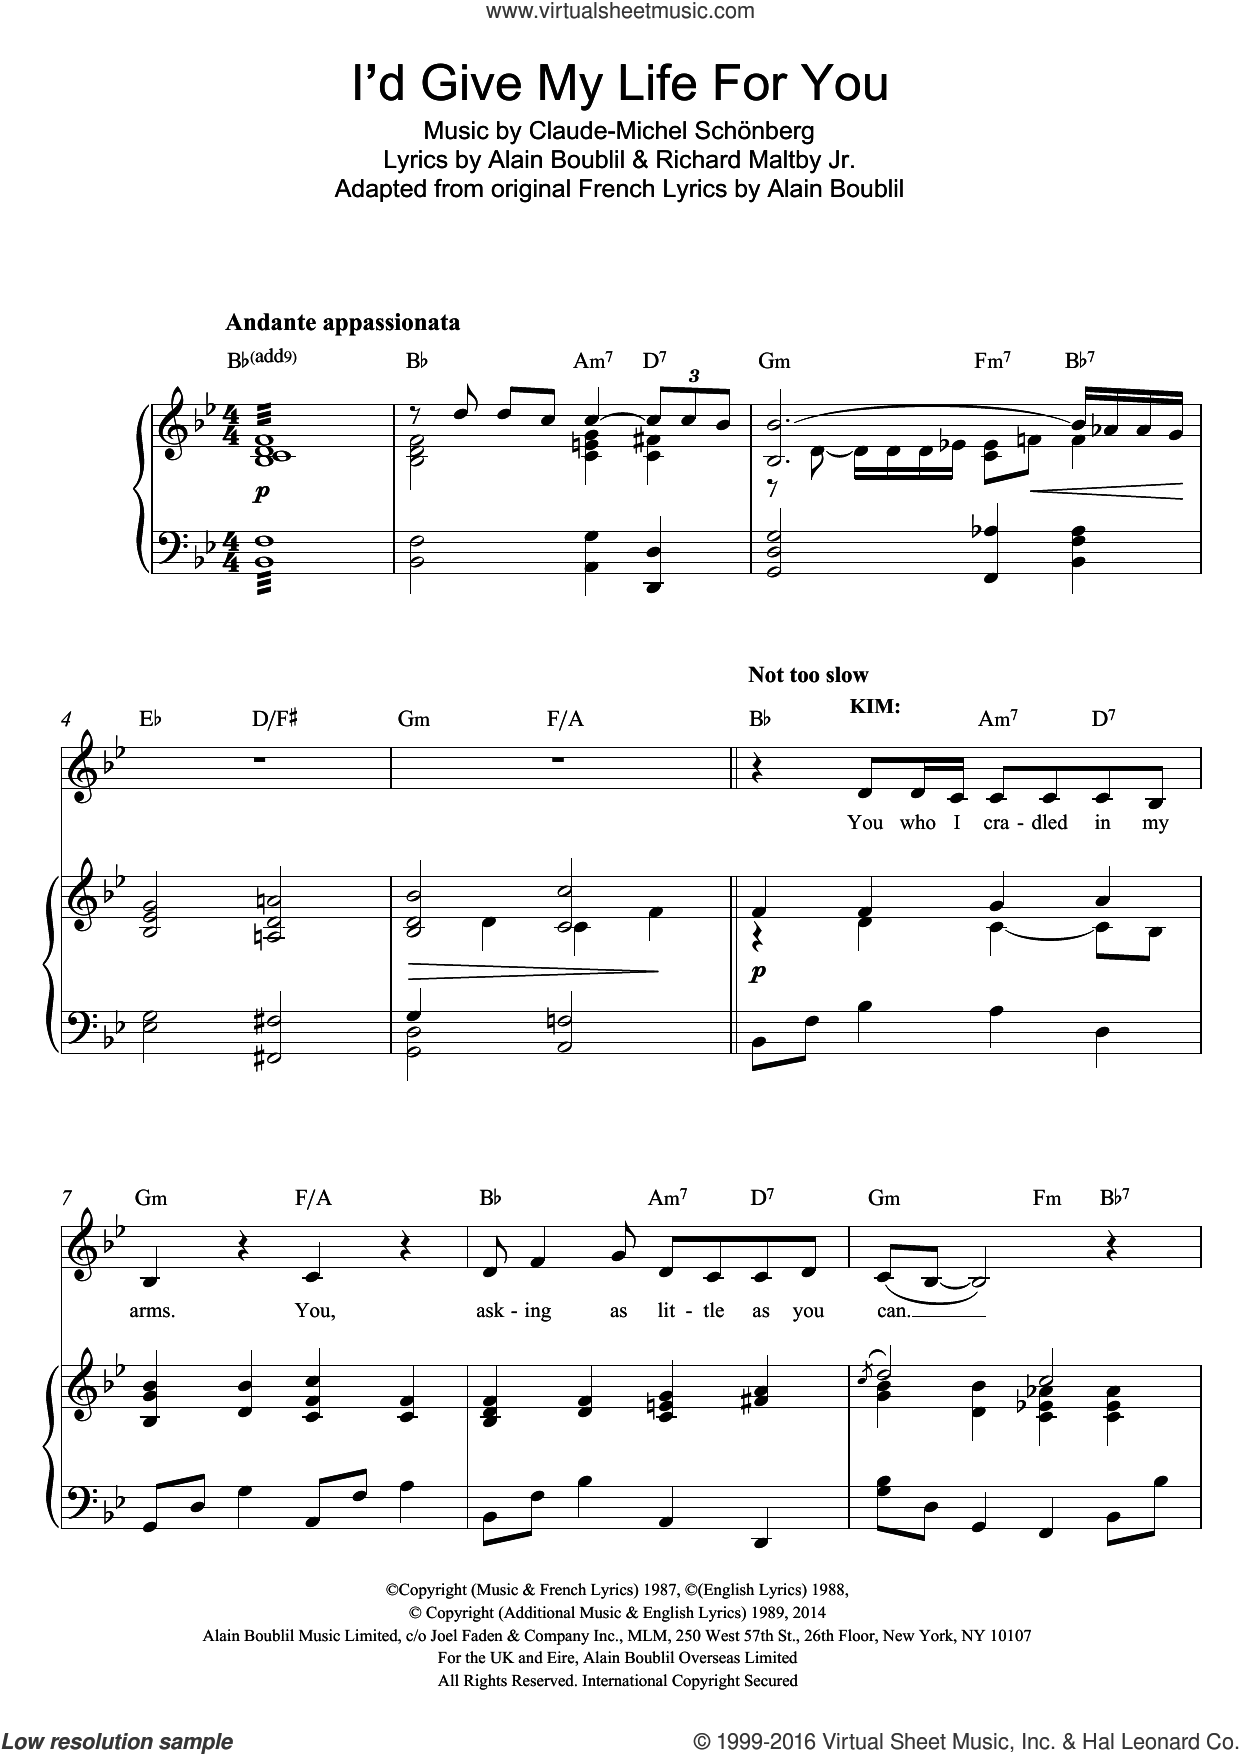 I'd Give My Life For You (from Miss Saigon) sheet music for voice and piano by Boublil and Schonberg, Alain Boublil, Claude-Michel Schonberg and Richard Maltby, Jr., intermediate skill level